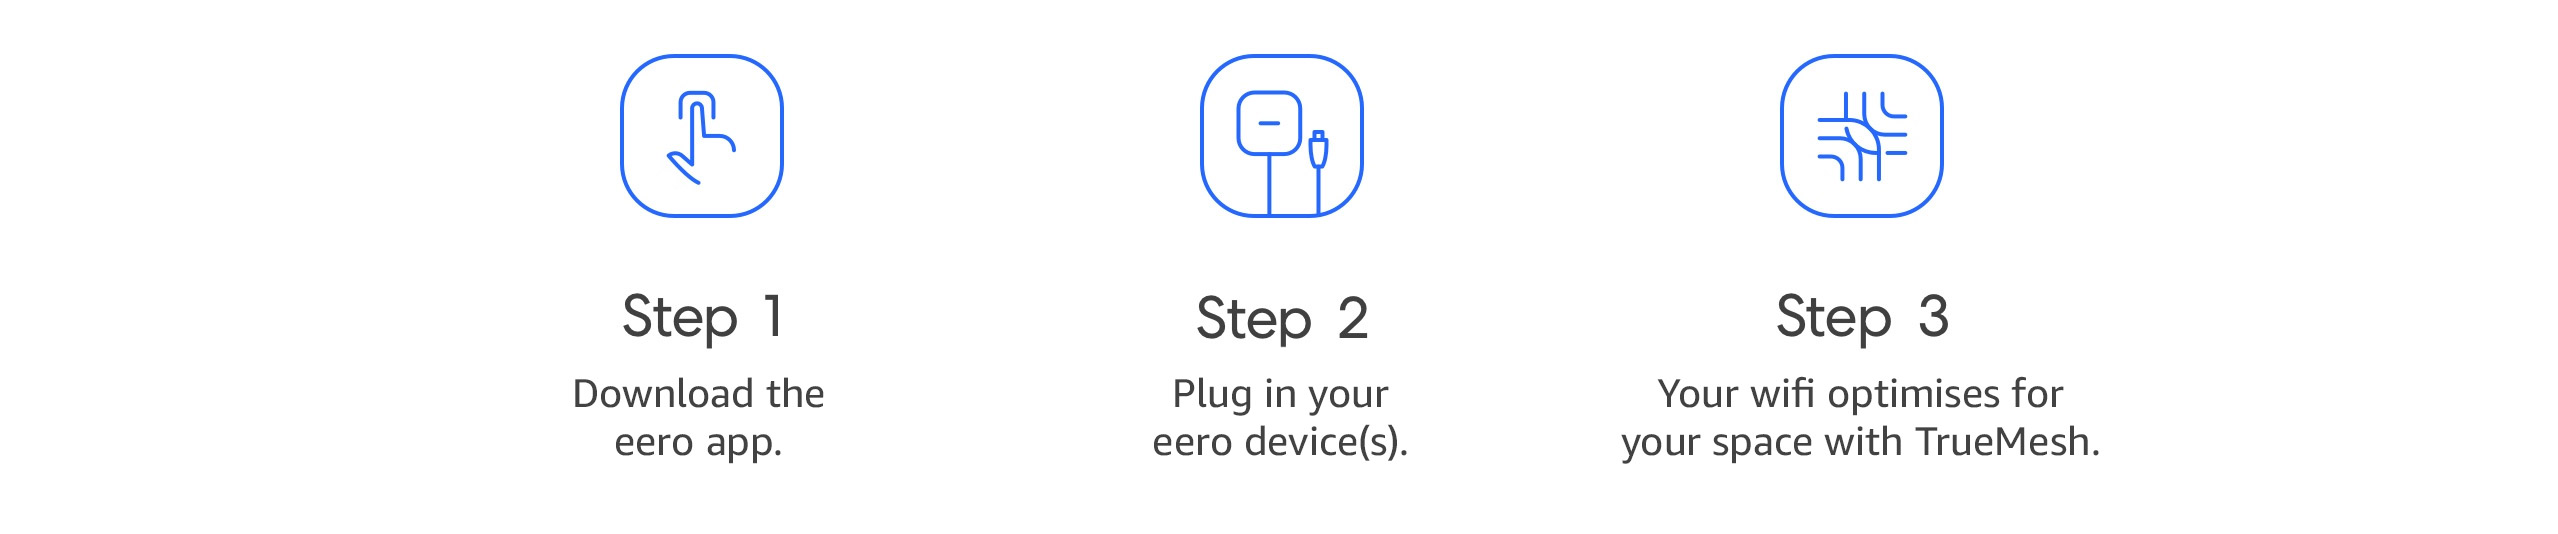 Step 1 download the eero app step 2 plug in your eero devices step 3 your wifi optimises for your sace with TrueMesh